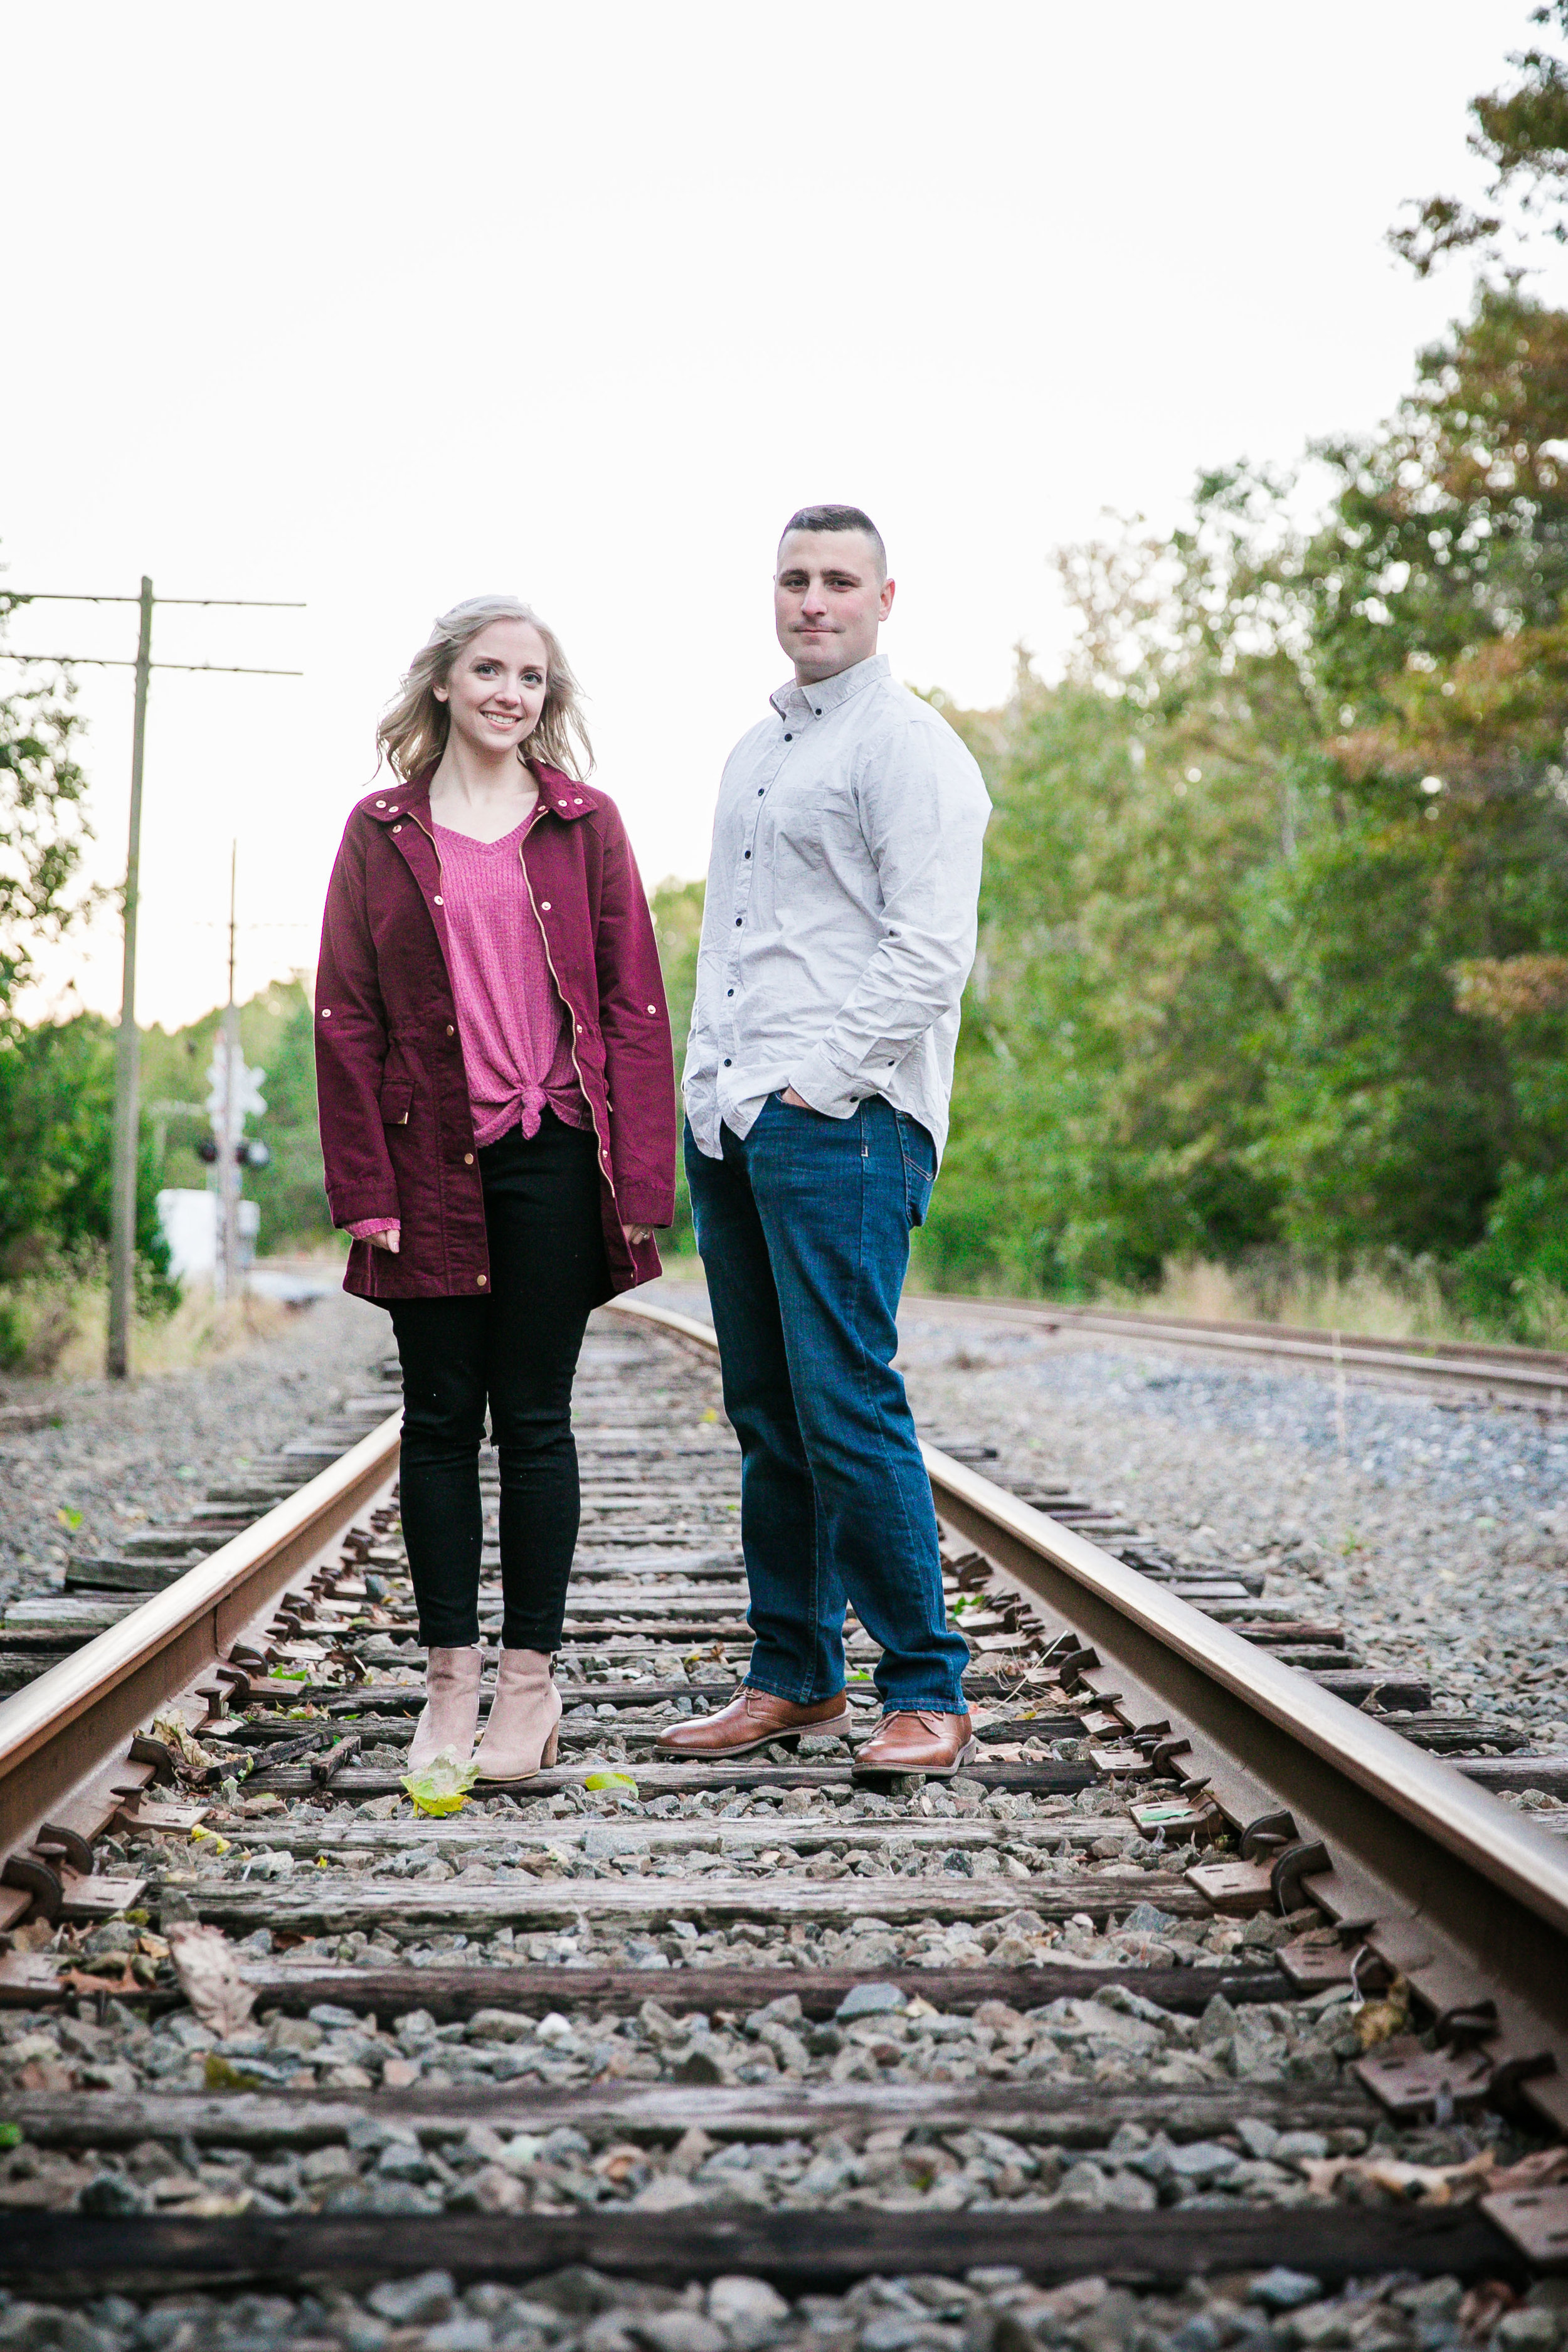 Katie and Kev - Train Tracks Engagement Photography - 027.jpg